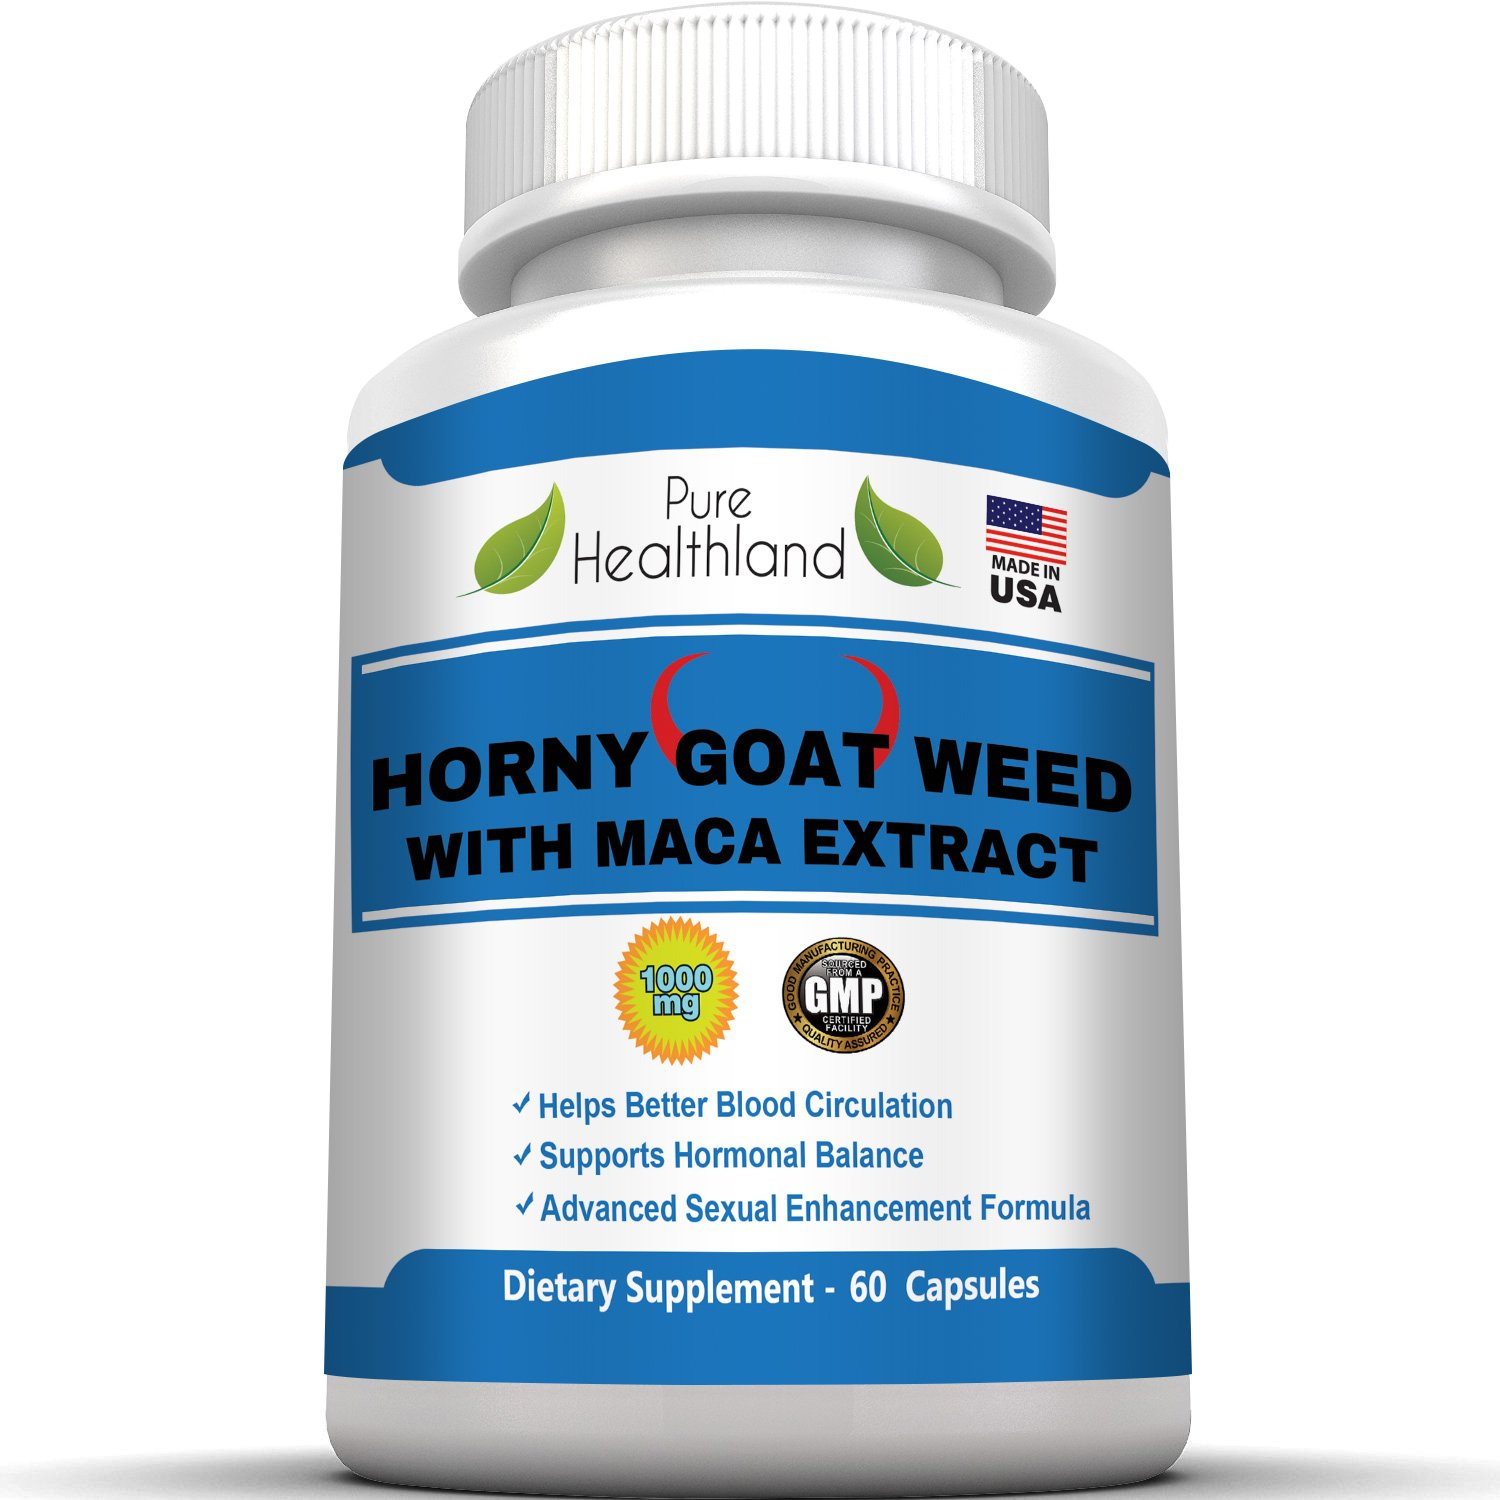 HORNY GOAT WEED 1000mg With MACA EXTRACT 250mg In Advanced Enhancement Formula For Men And Women, Helps Better Blood Circulation, Supports Hormonal Balance, Natural Herbal Energy Booster